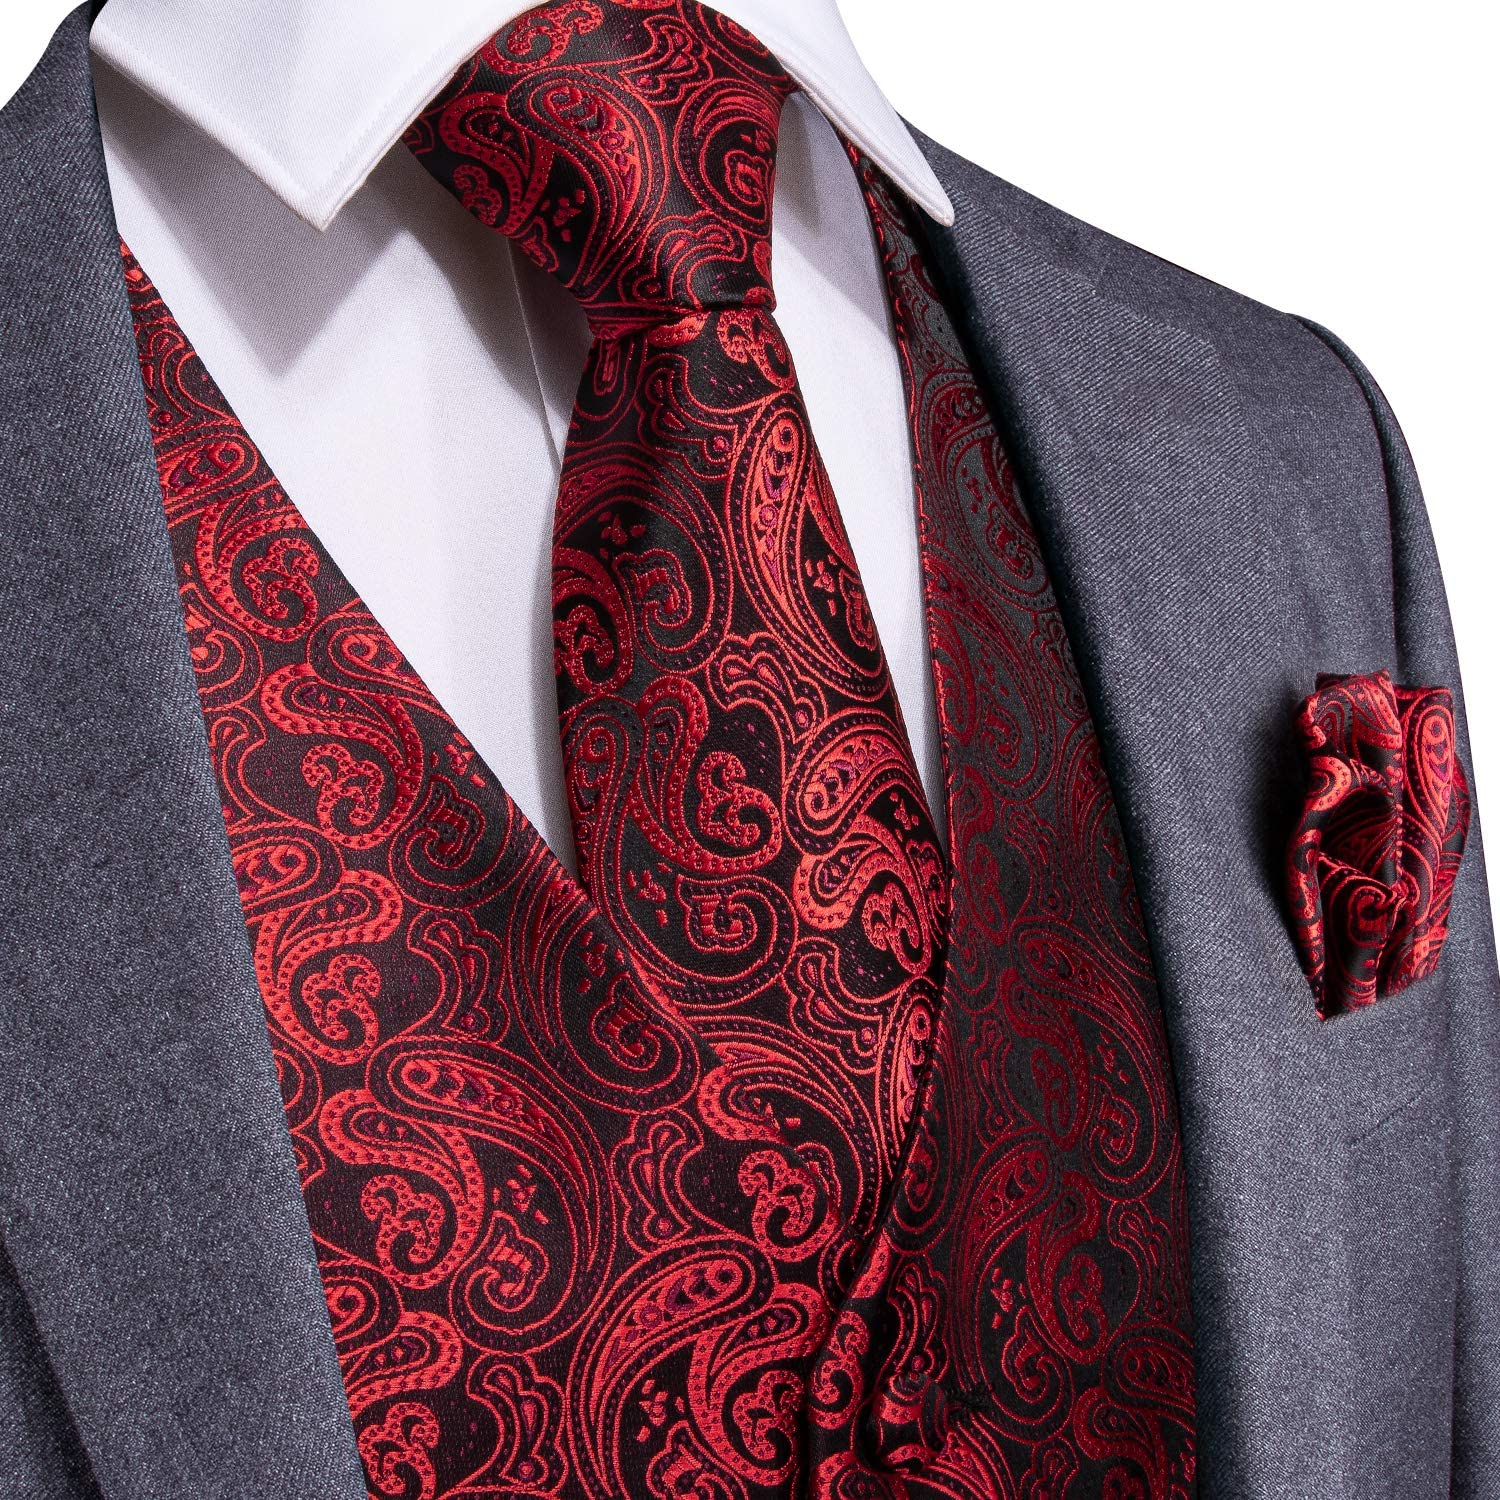 DiBanGu Men Vest and Tie Set 4 Pcs Paisley Tie Pocket Square Cufflinks Set Dress Waistcoat Vest Formal